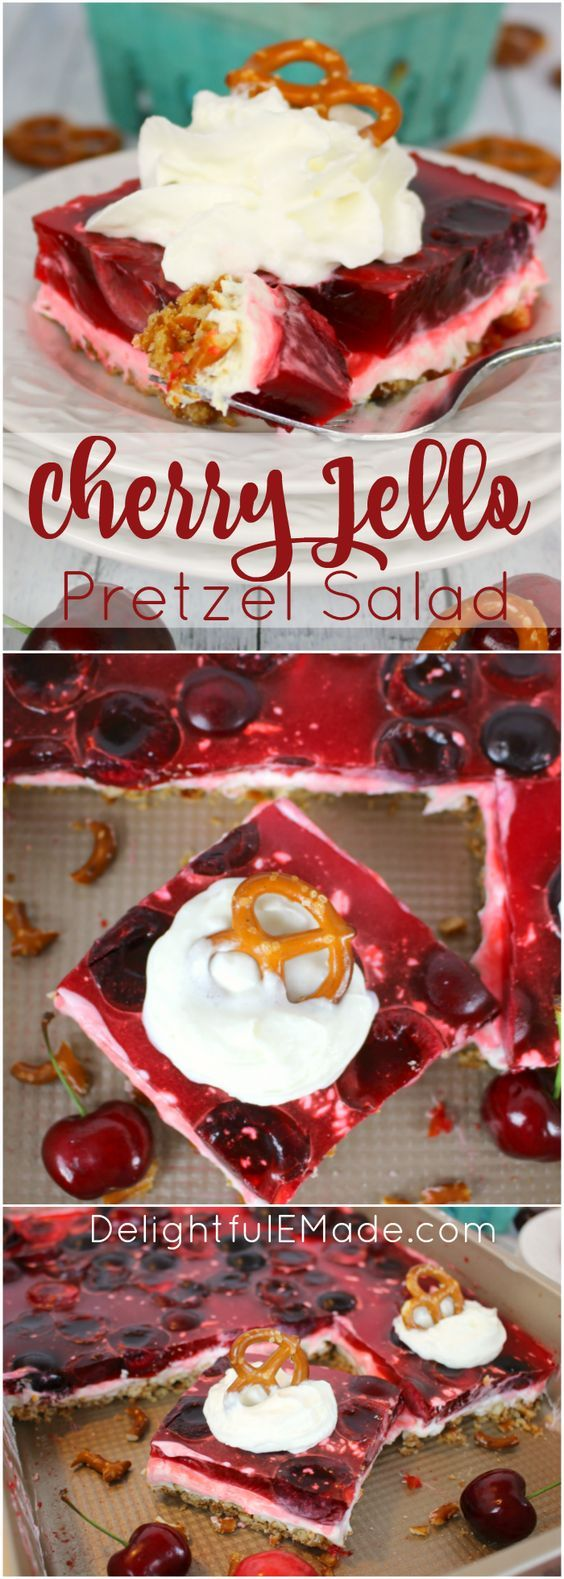 Amazing as a salad or dessert, this incredible Cherry Jello Pretzel Salad is the ultimate side dish for any cookout, potluck or backyard barbecue!  Made with a salty-sweet pretzel crust, a delicious cream cheese filling, and topped with fresh cherries in jello, this salad is a must for any summer get-together.  Even better than the strawberry version!